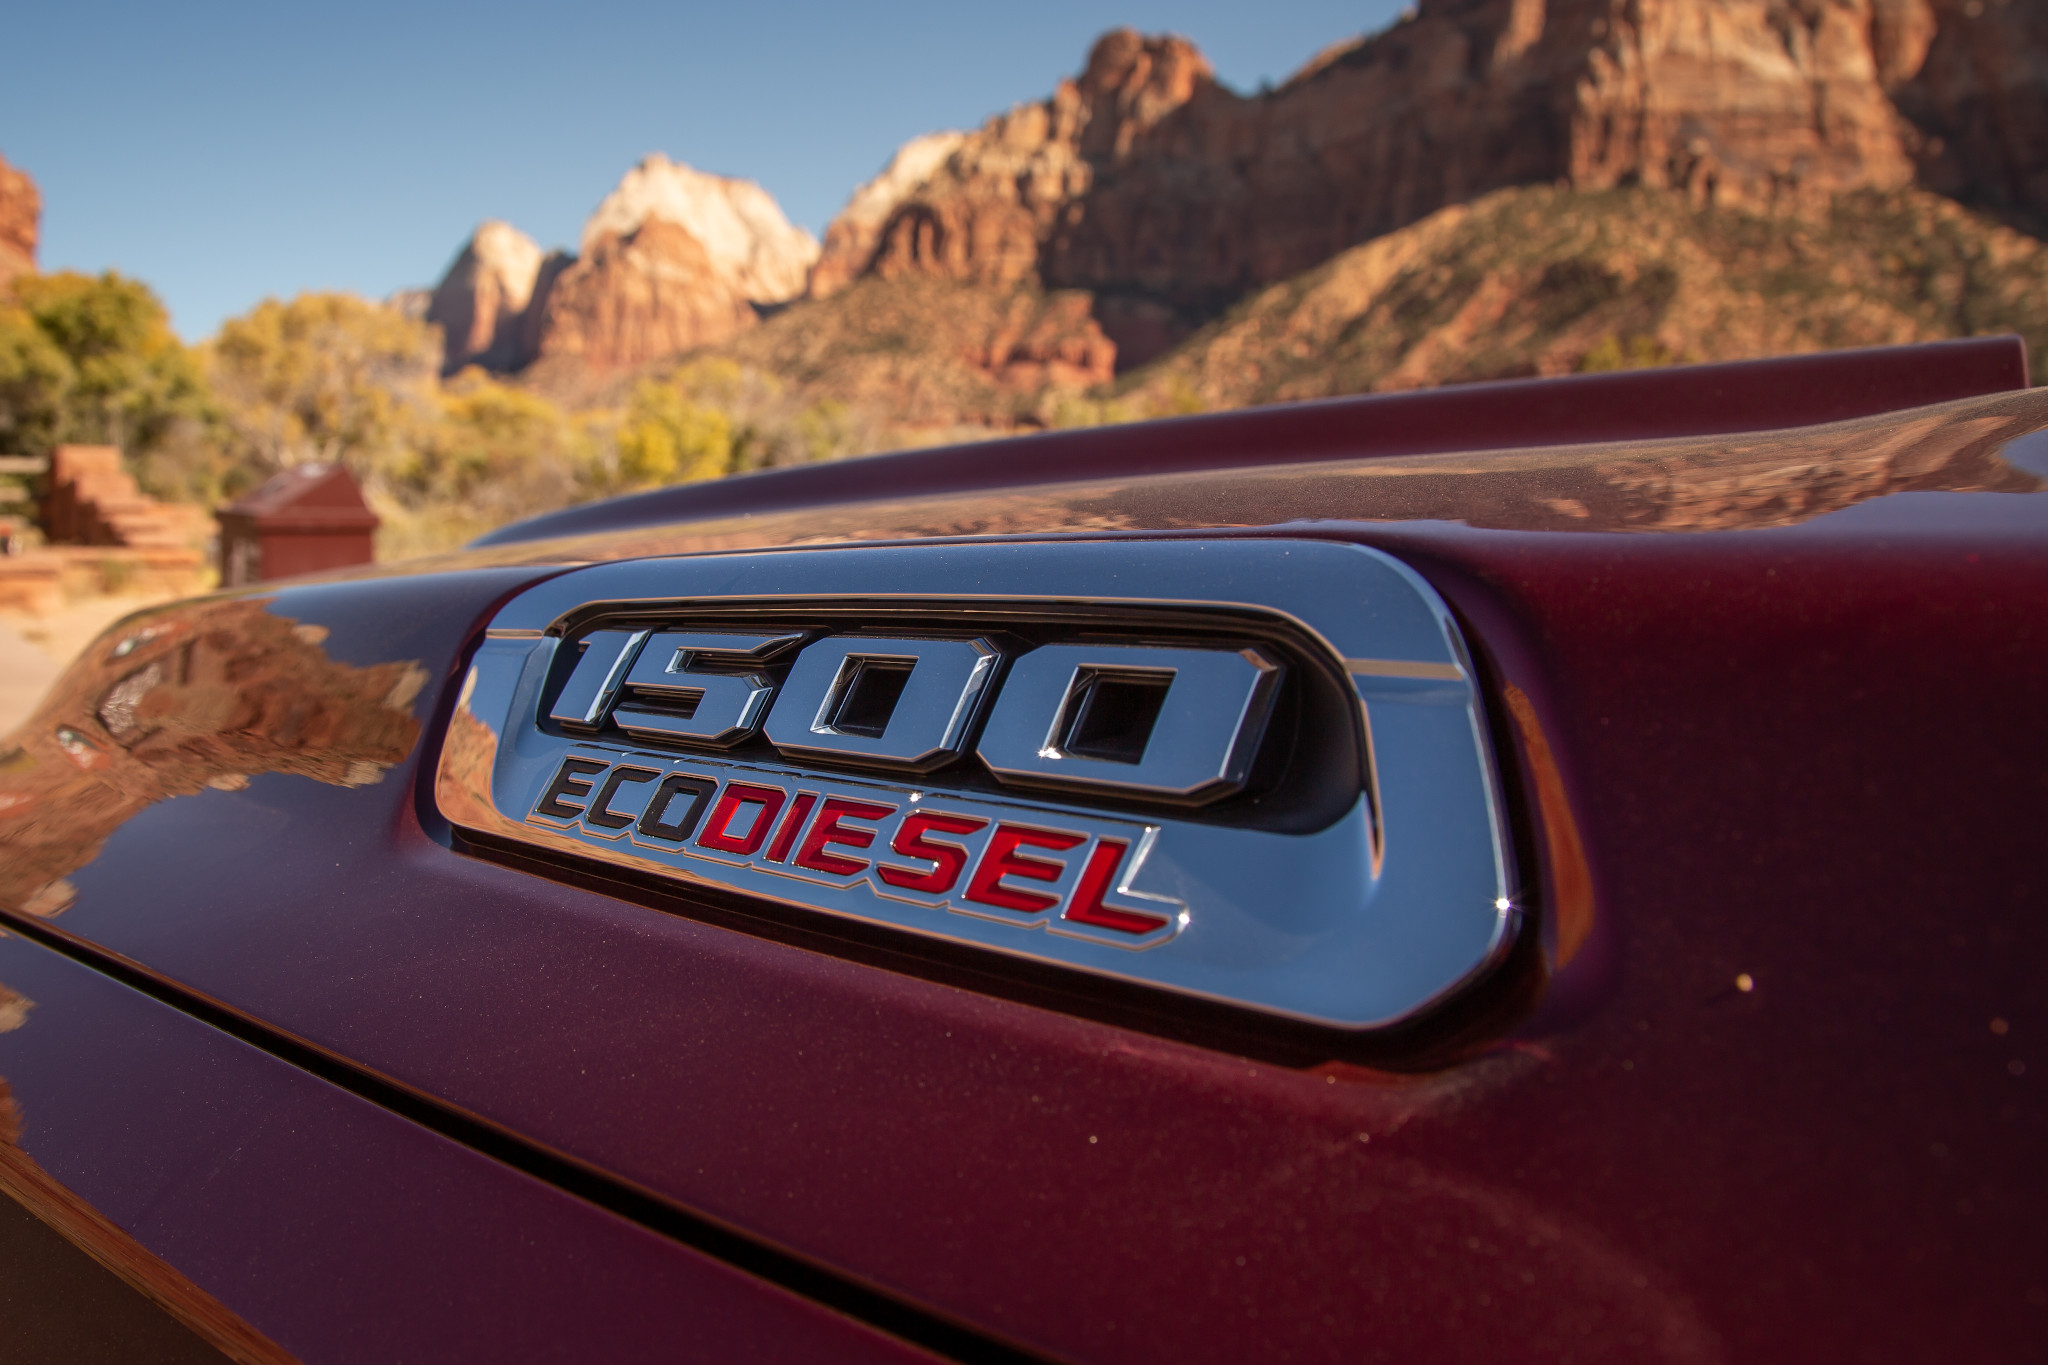 ram-1500-eco-diesel-2020-03-badge--exterior--mountains--red.jpg